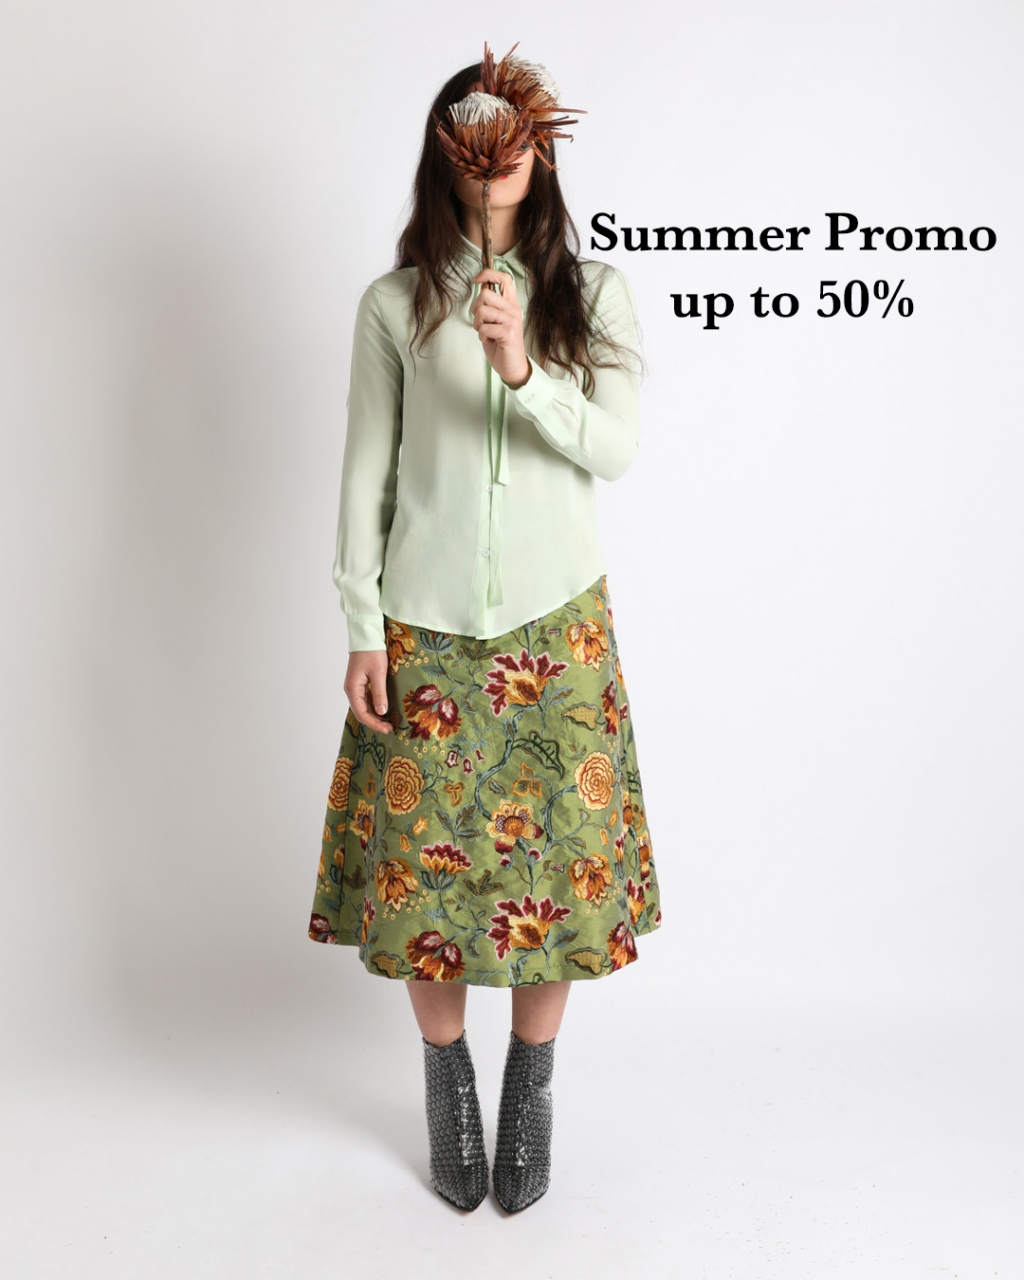 Summer Promo, up to 50% in store and on our online shop!